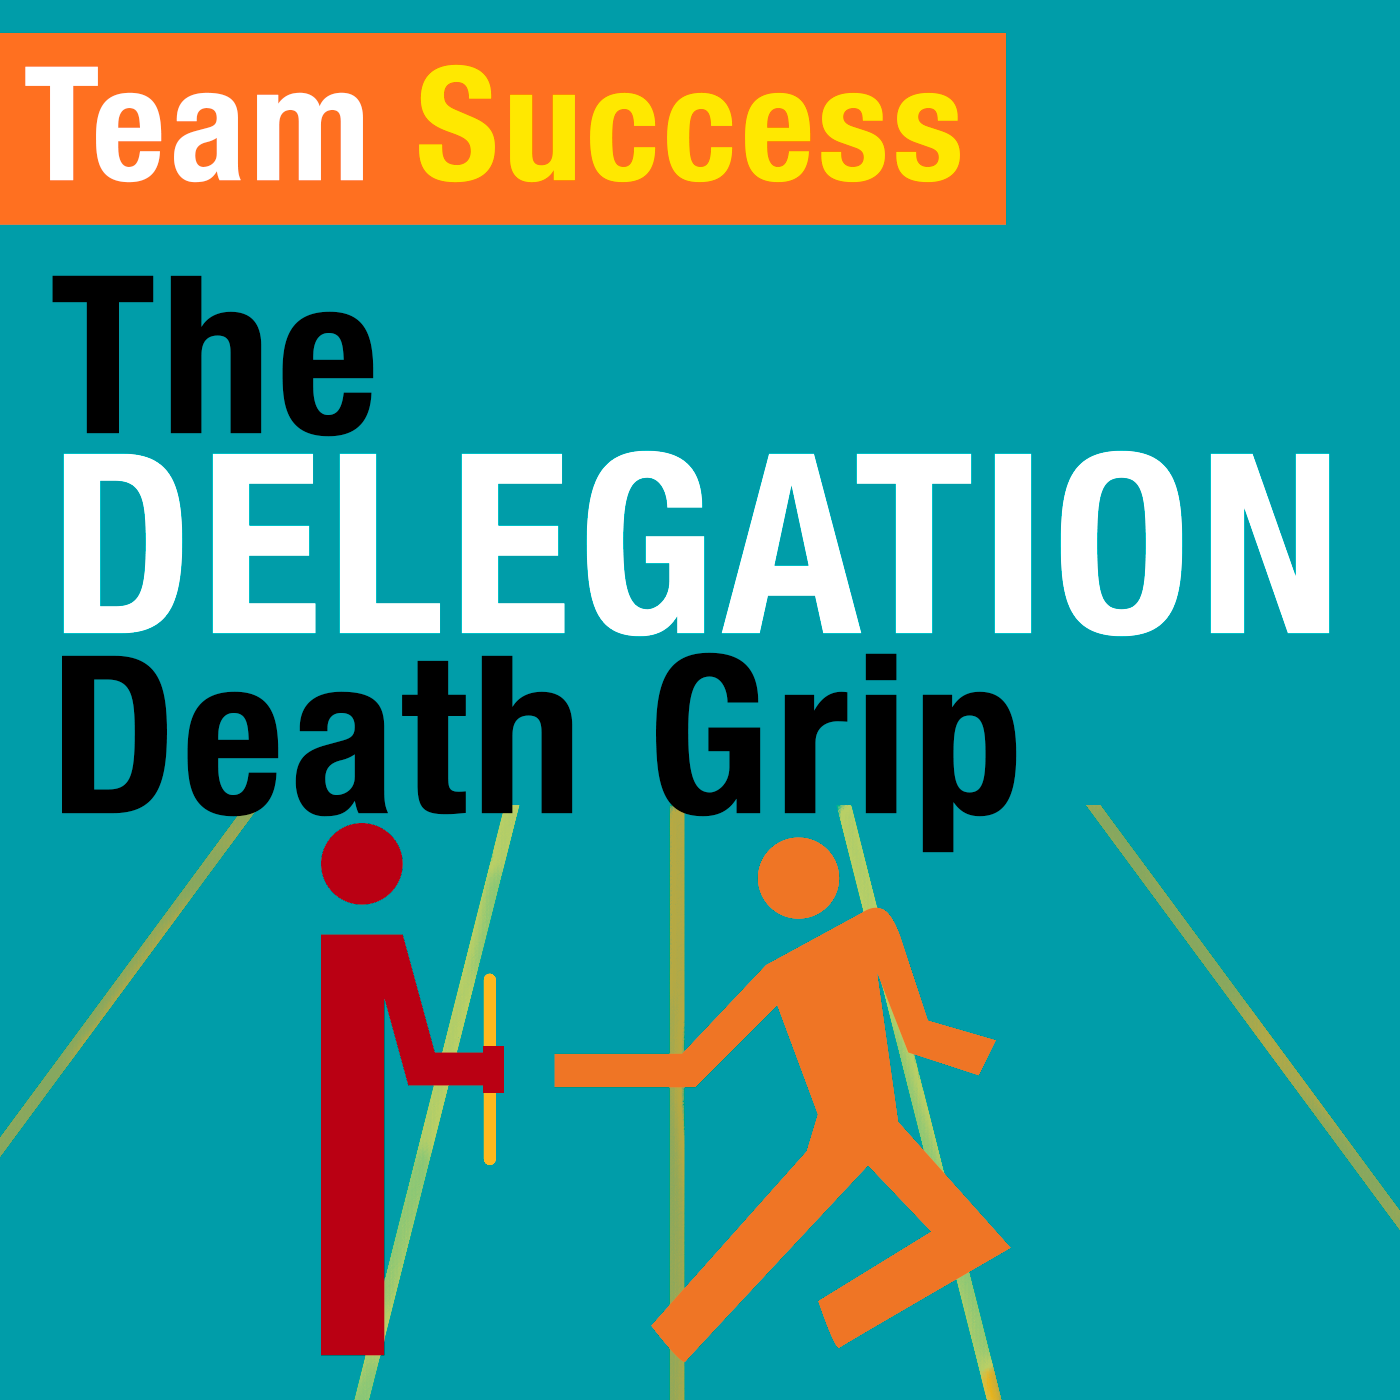 The Delegation Death Grip